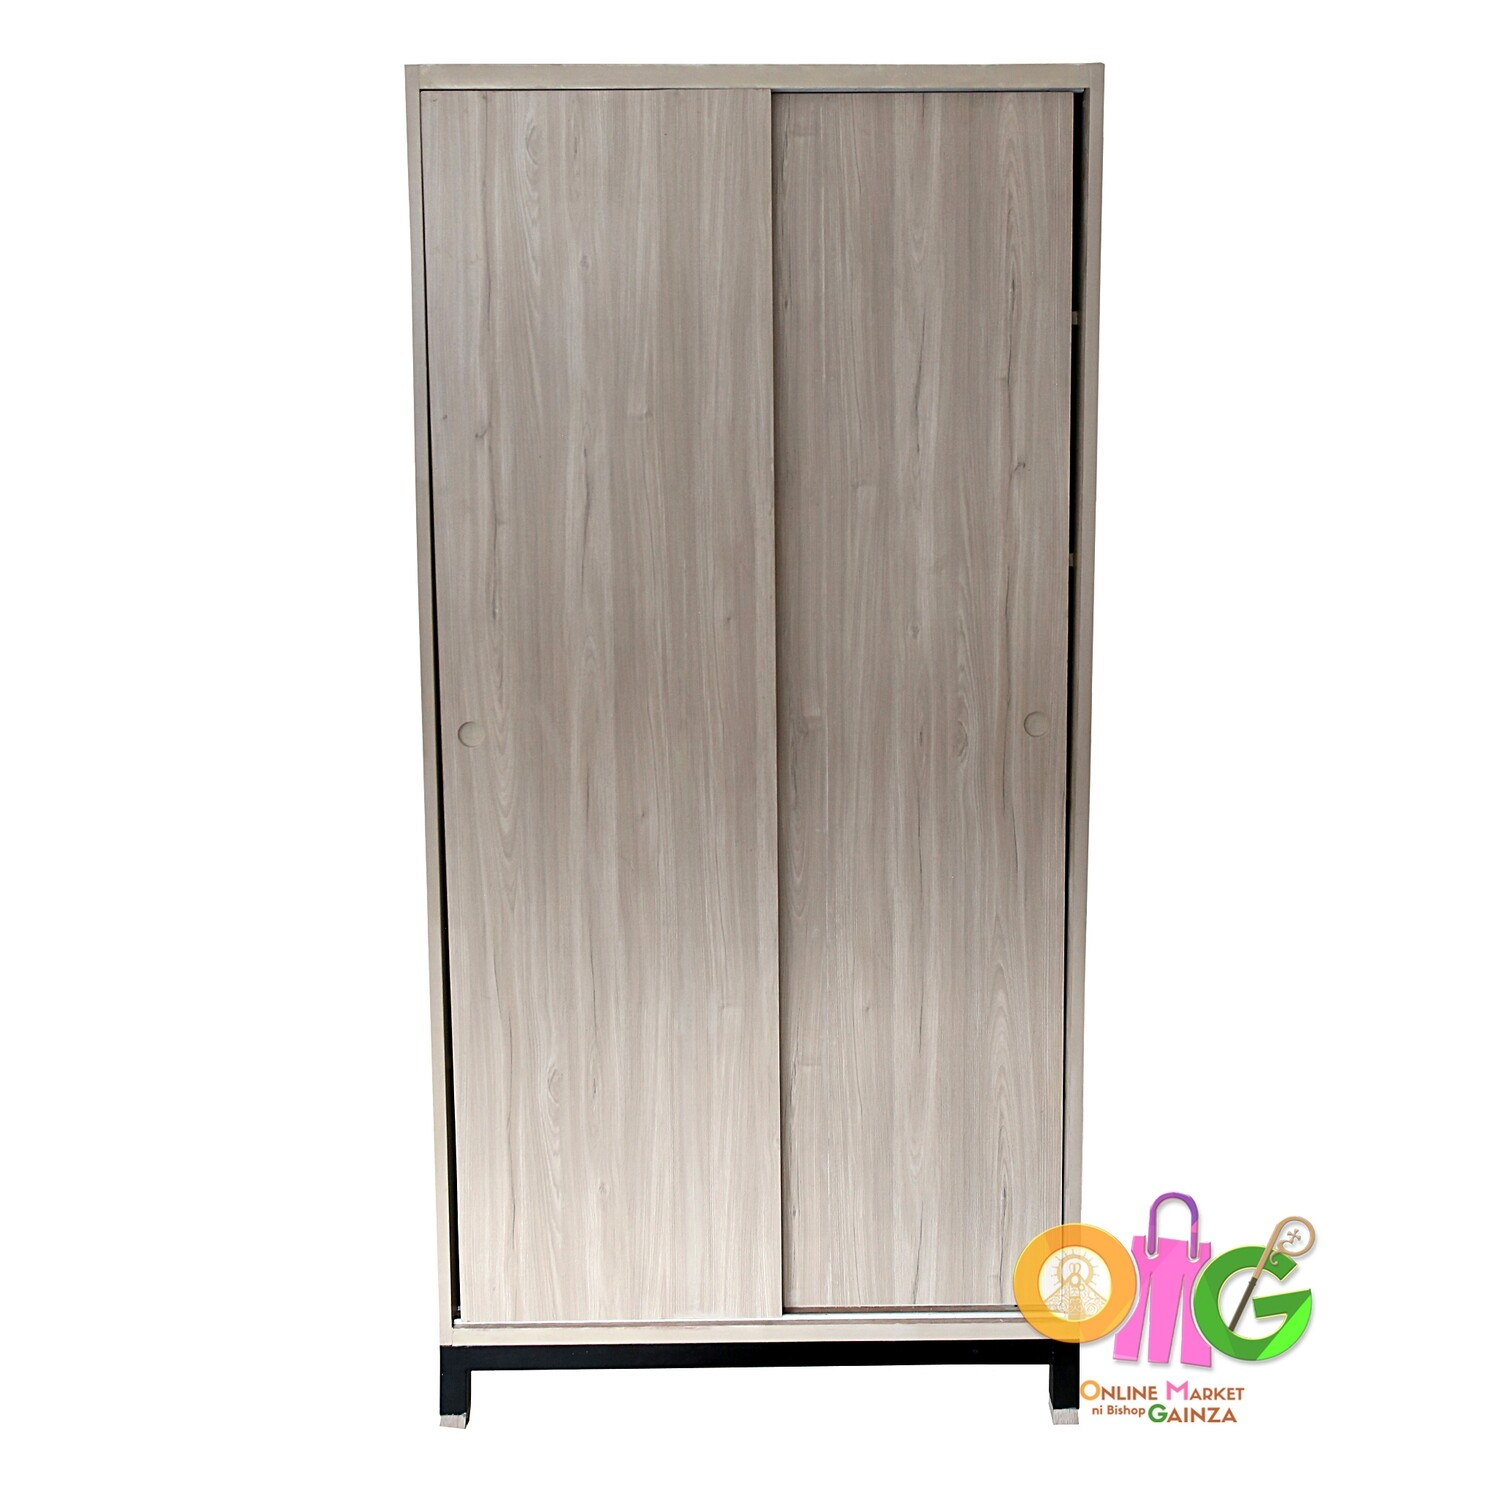 Nitz Furnitures - Book/Office Cabinet